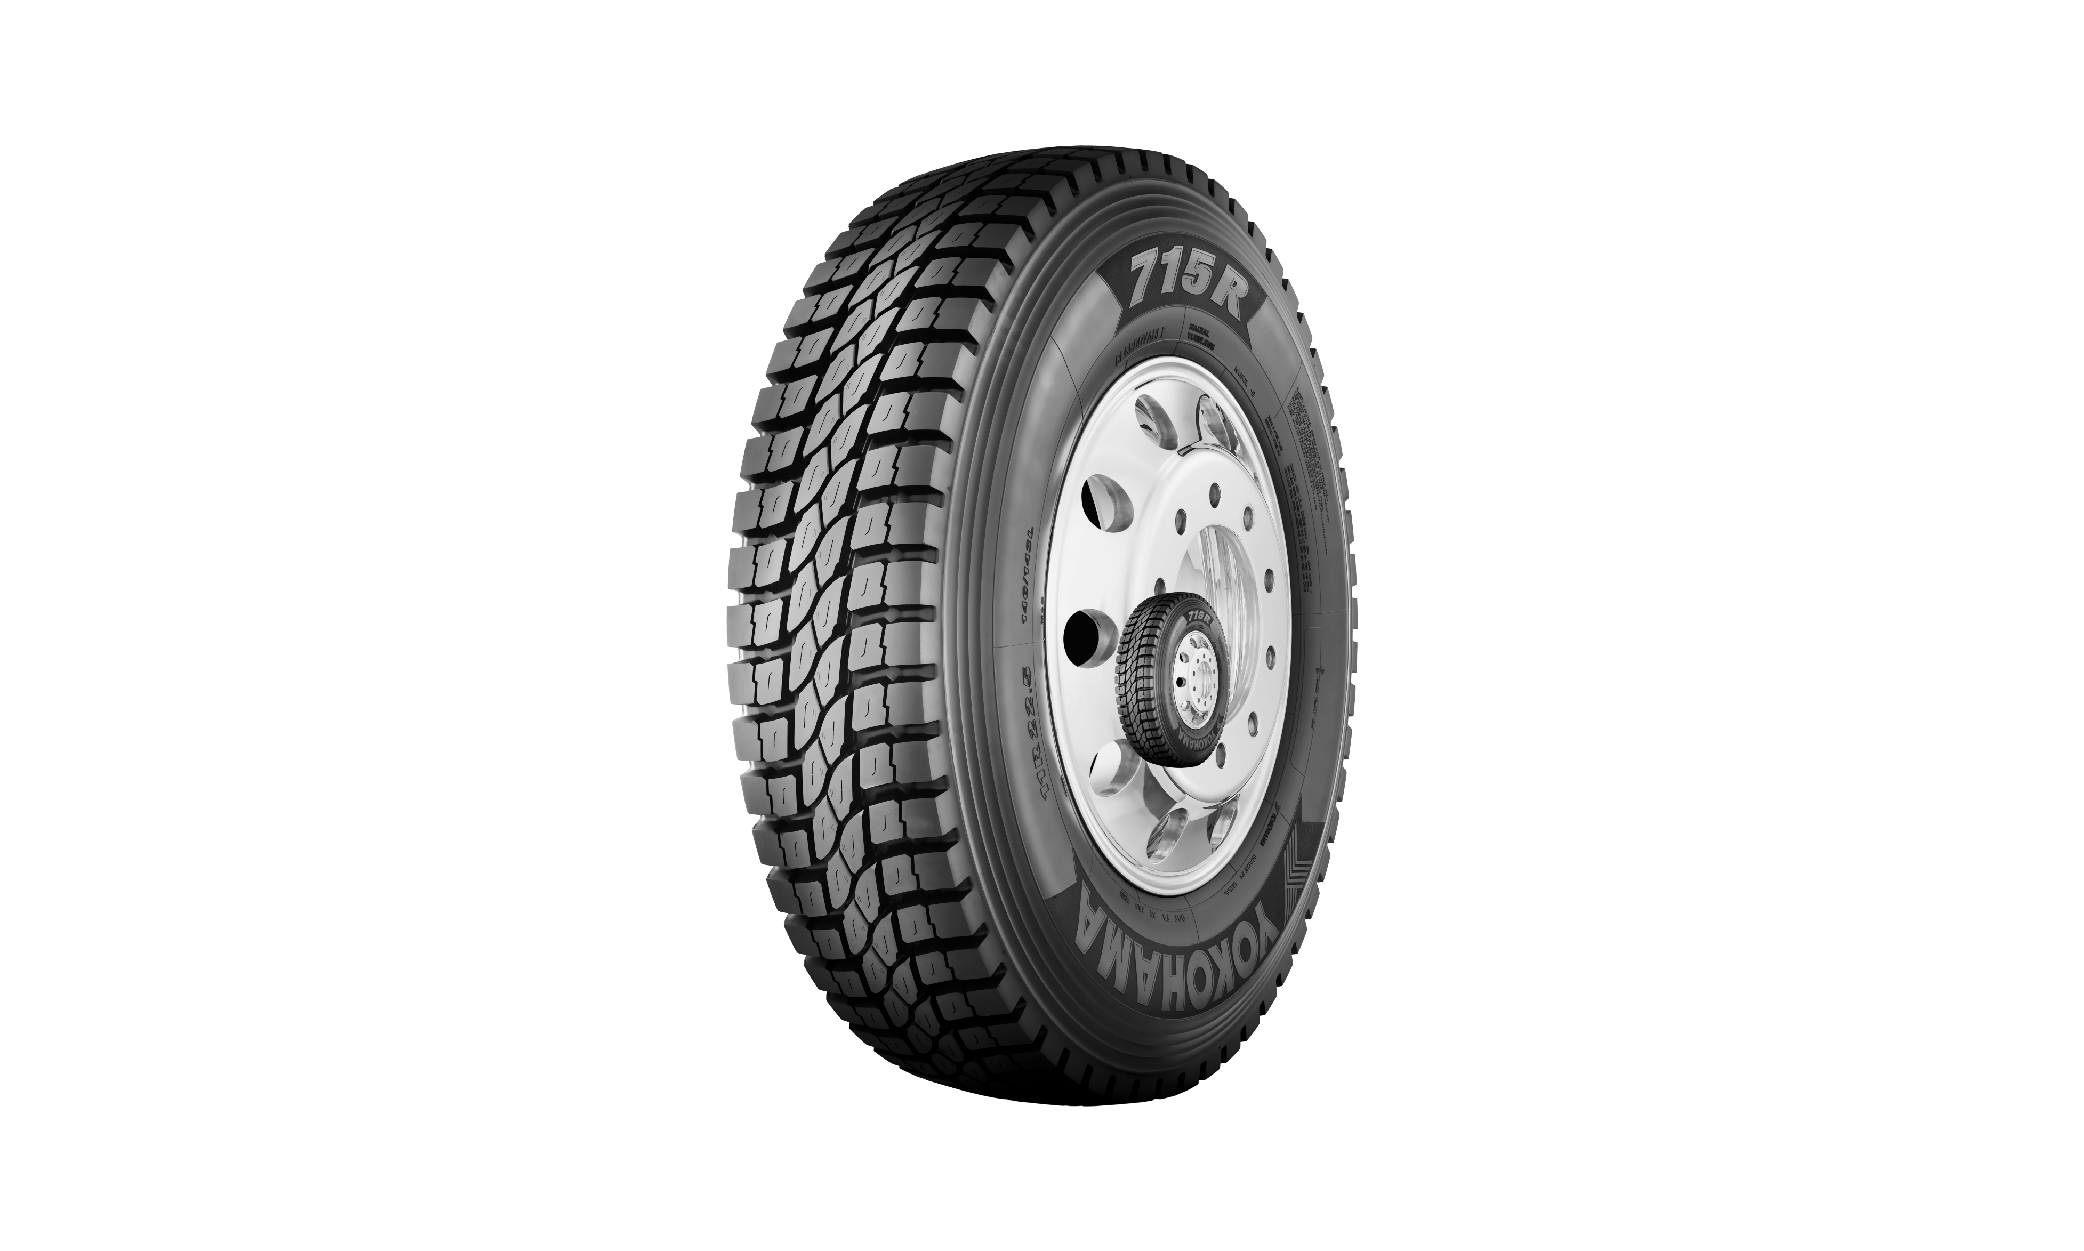 Conventional tire